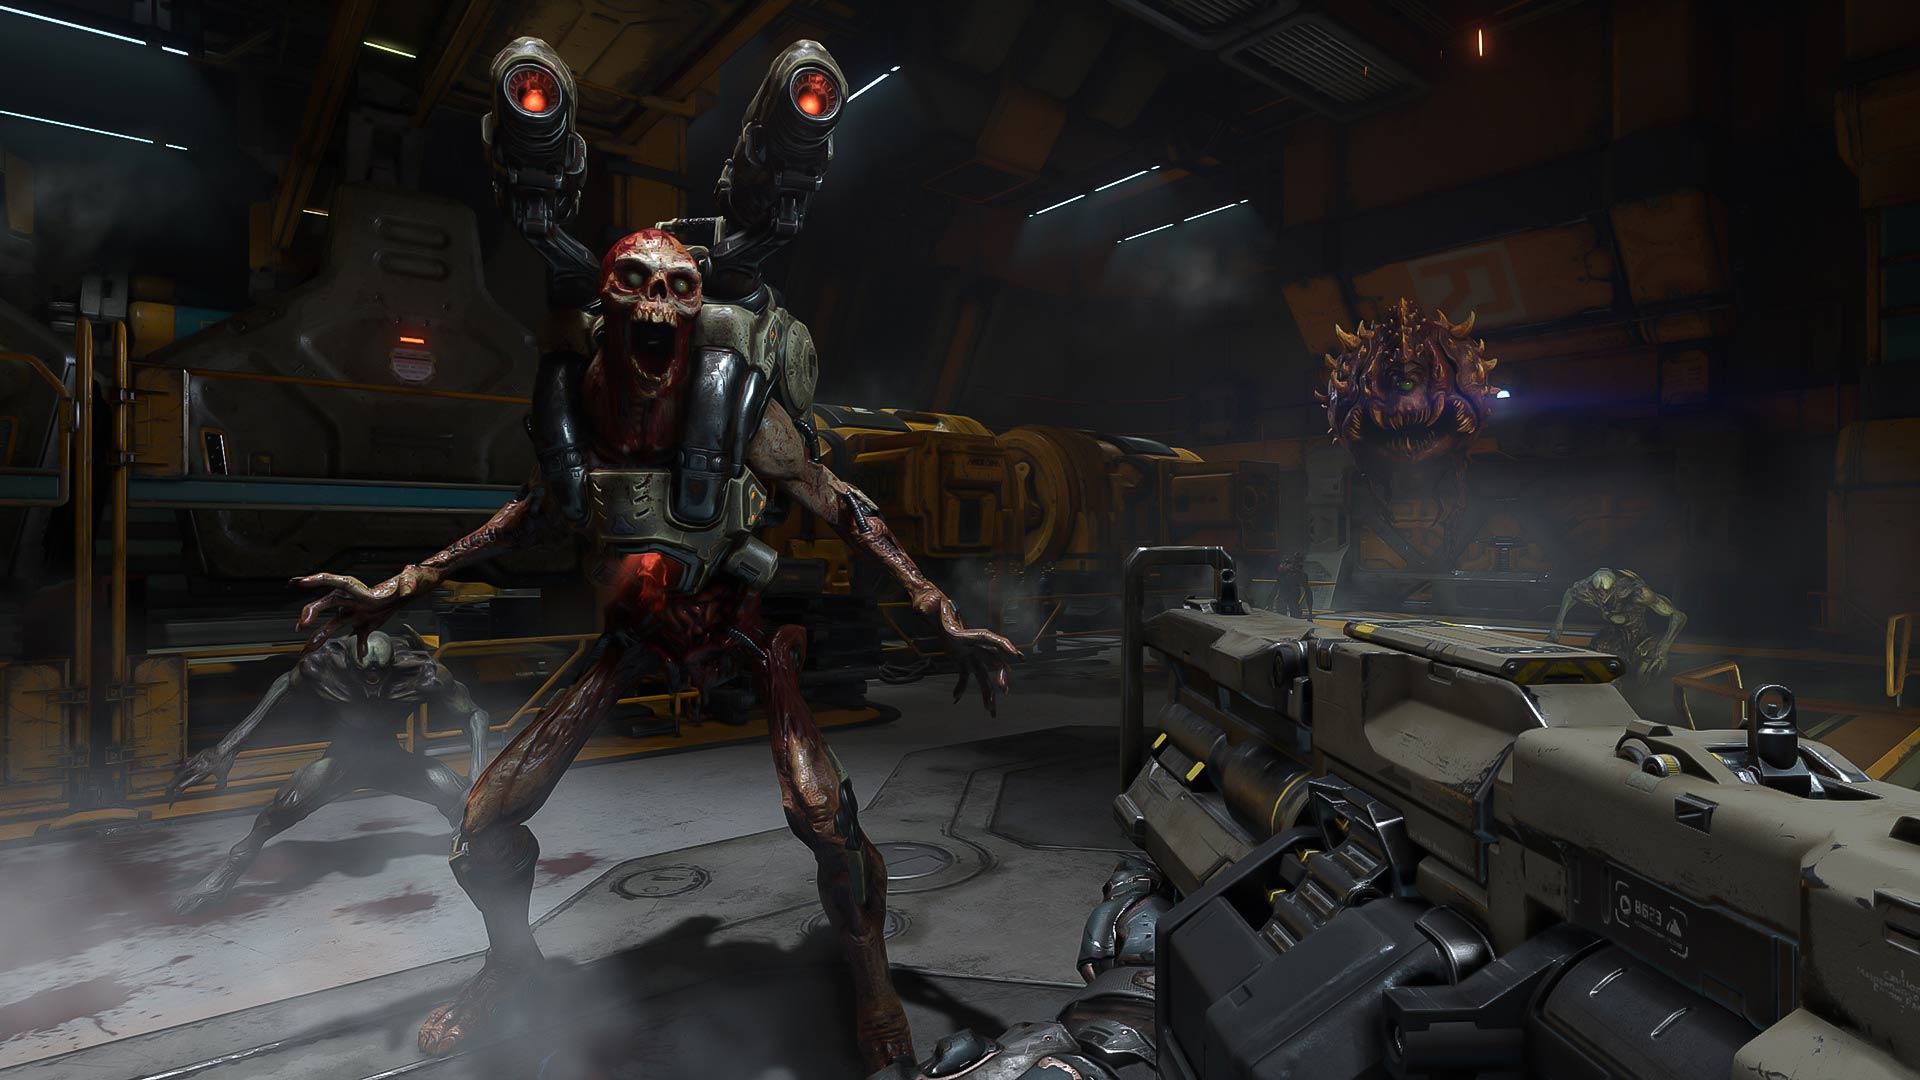 doom-quakecon-2015-1